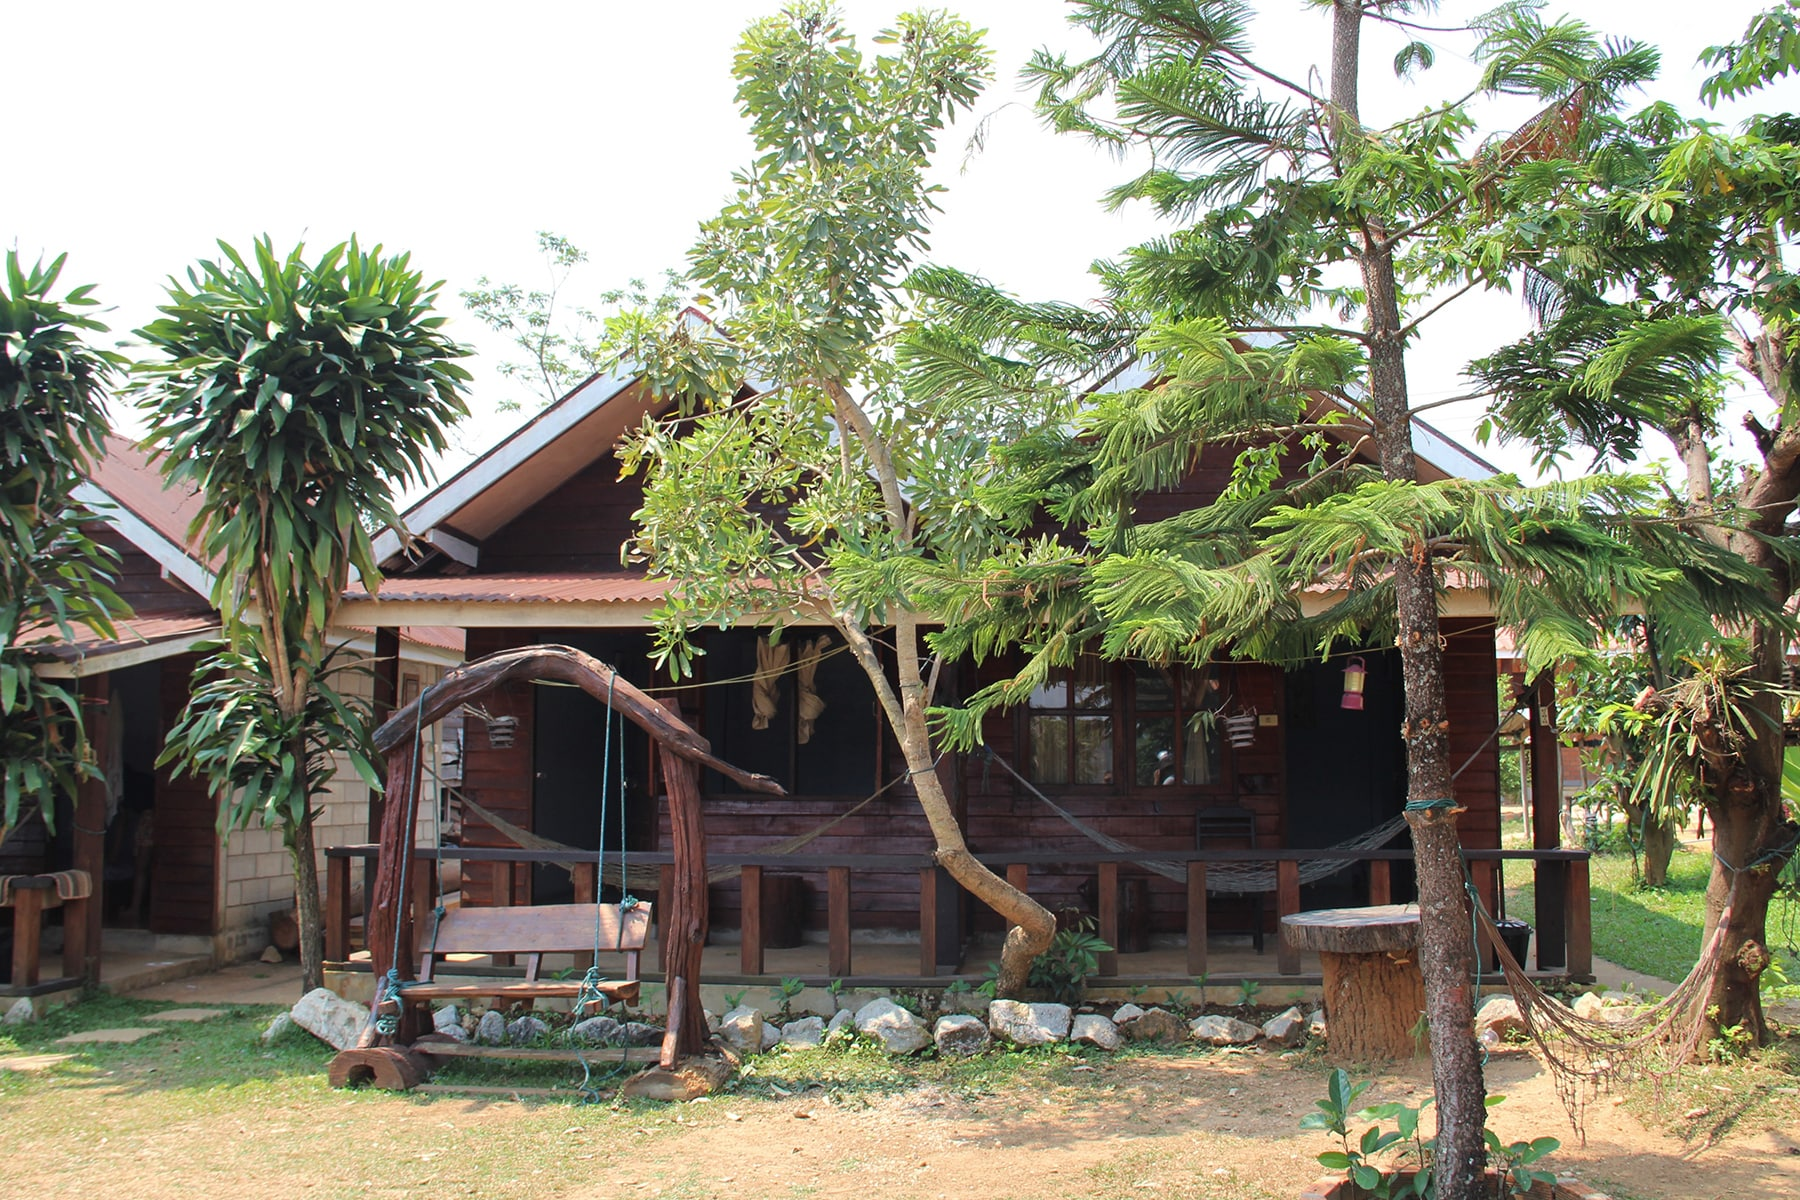 Two rooms in a bungalow in the Sabaidee Guesthouse during Thakek loop, Laos